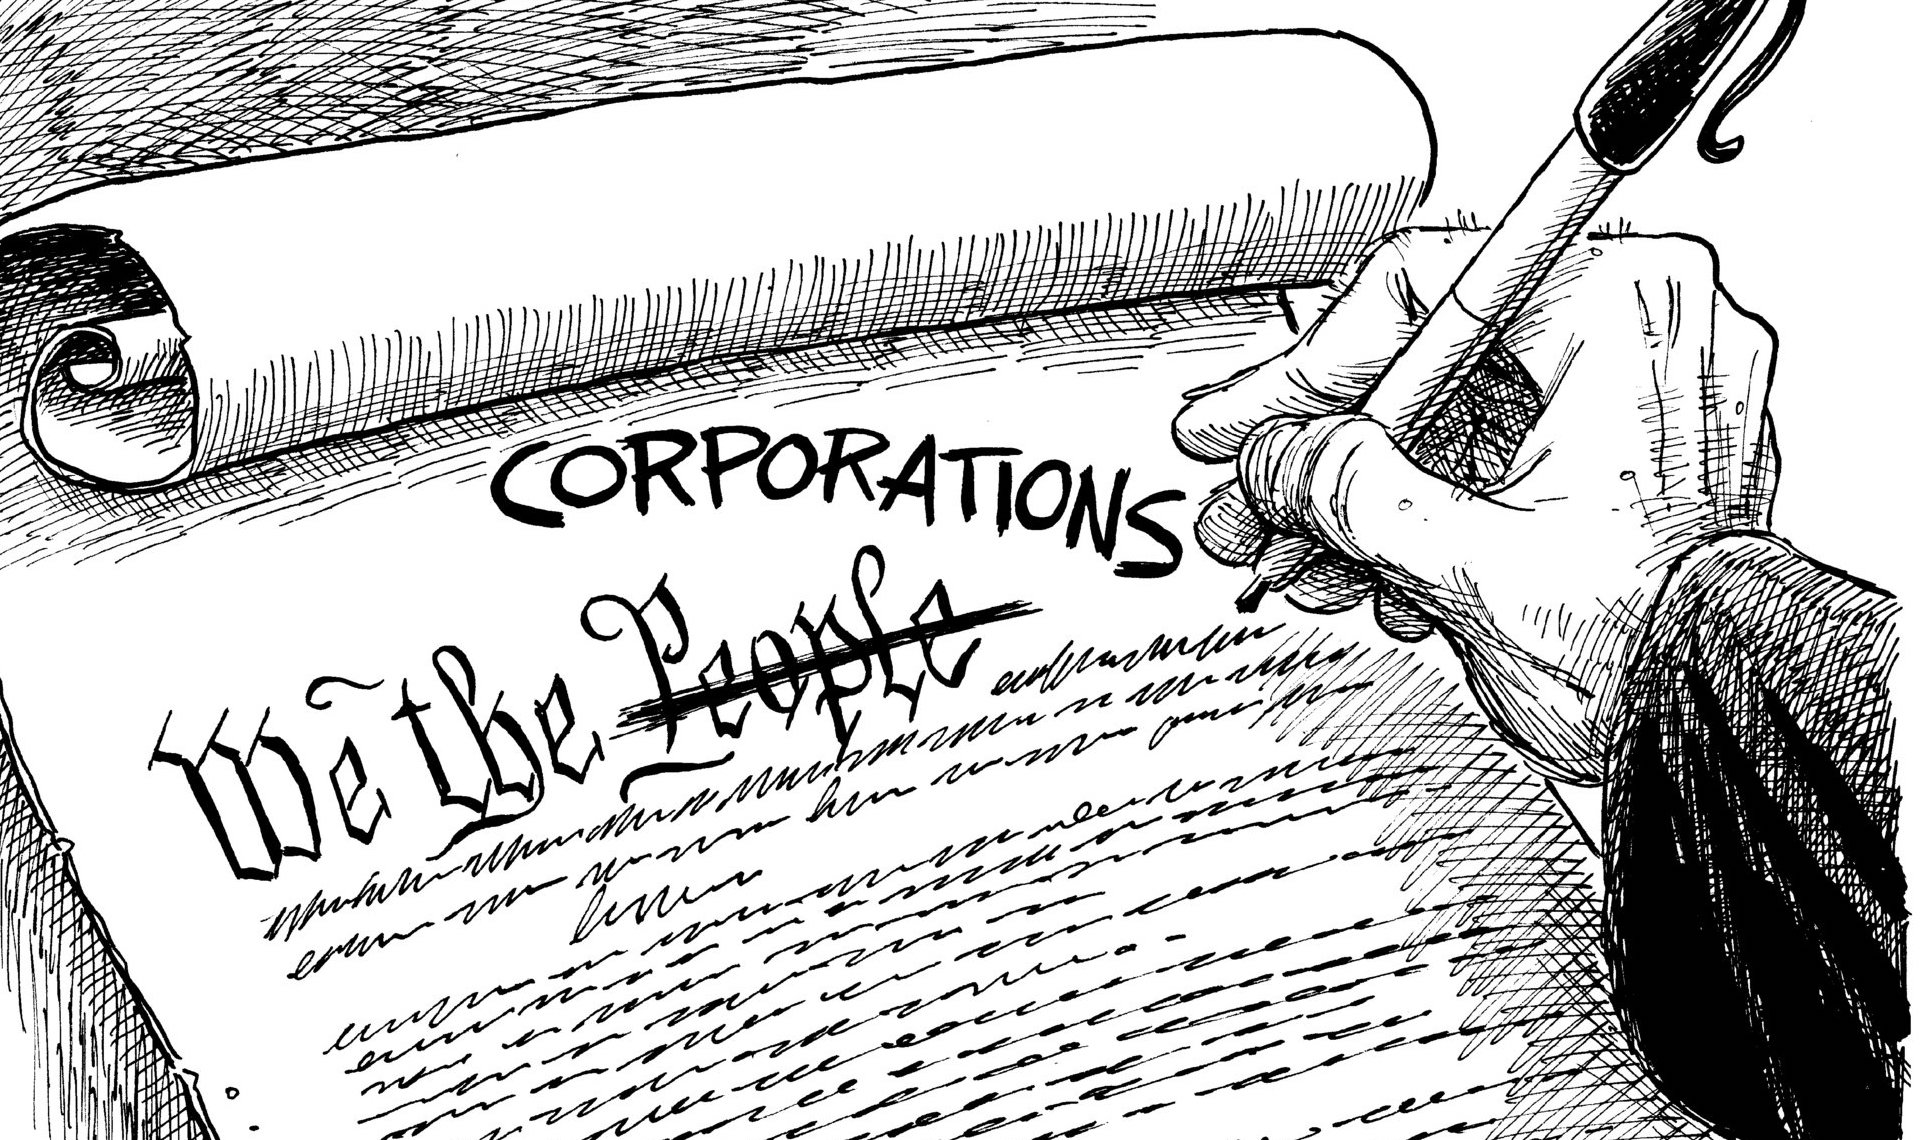 OPINION: Corporate Citizenship Starts with not Undermining Our Democracy